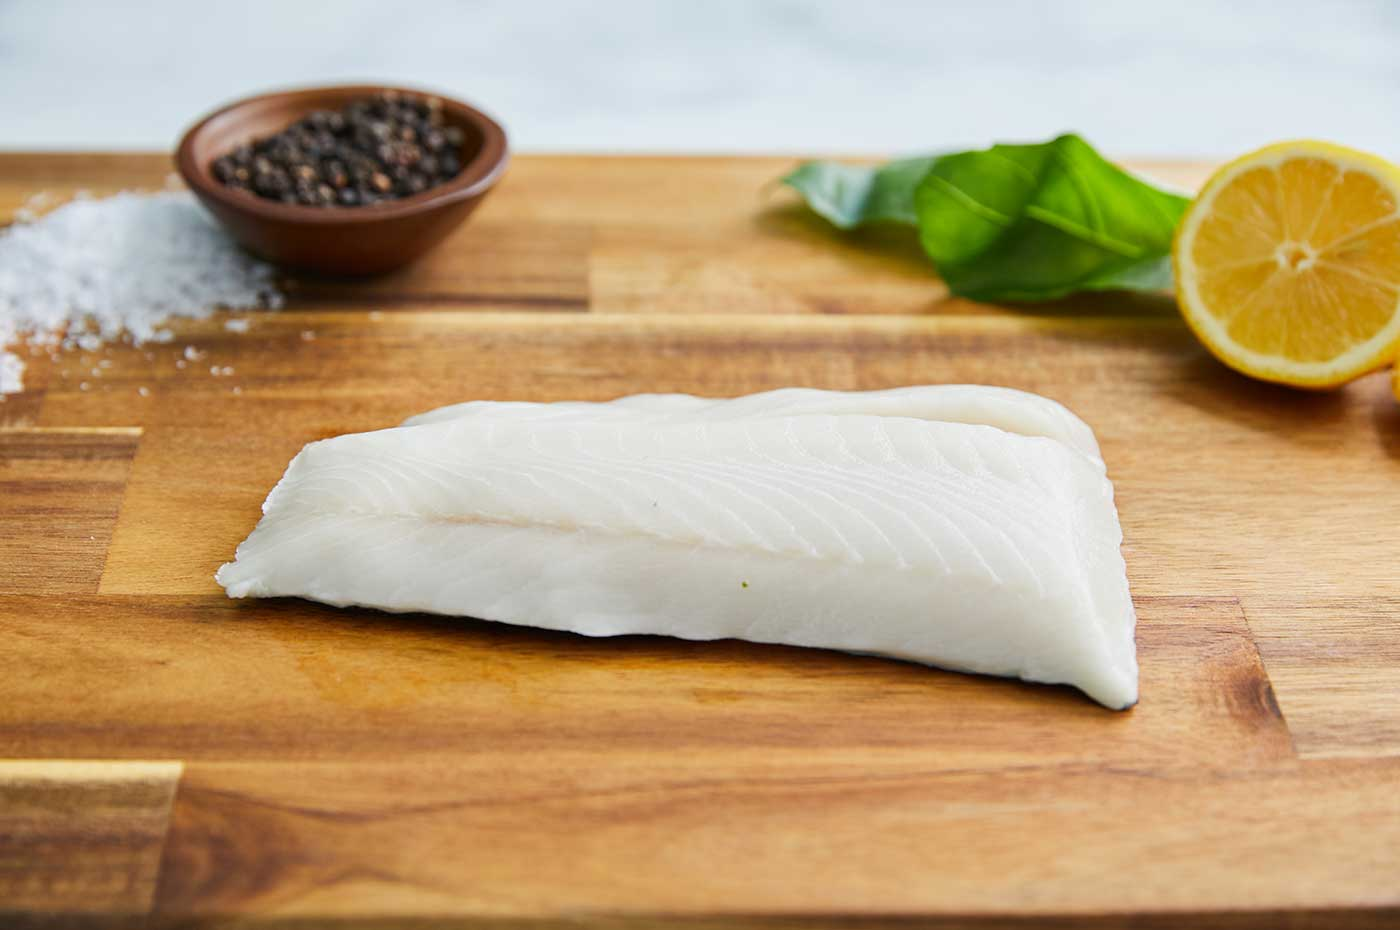 Get fish to room temperature before cooking